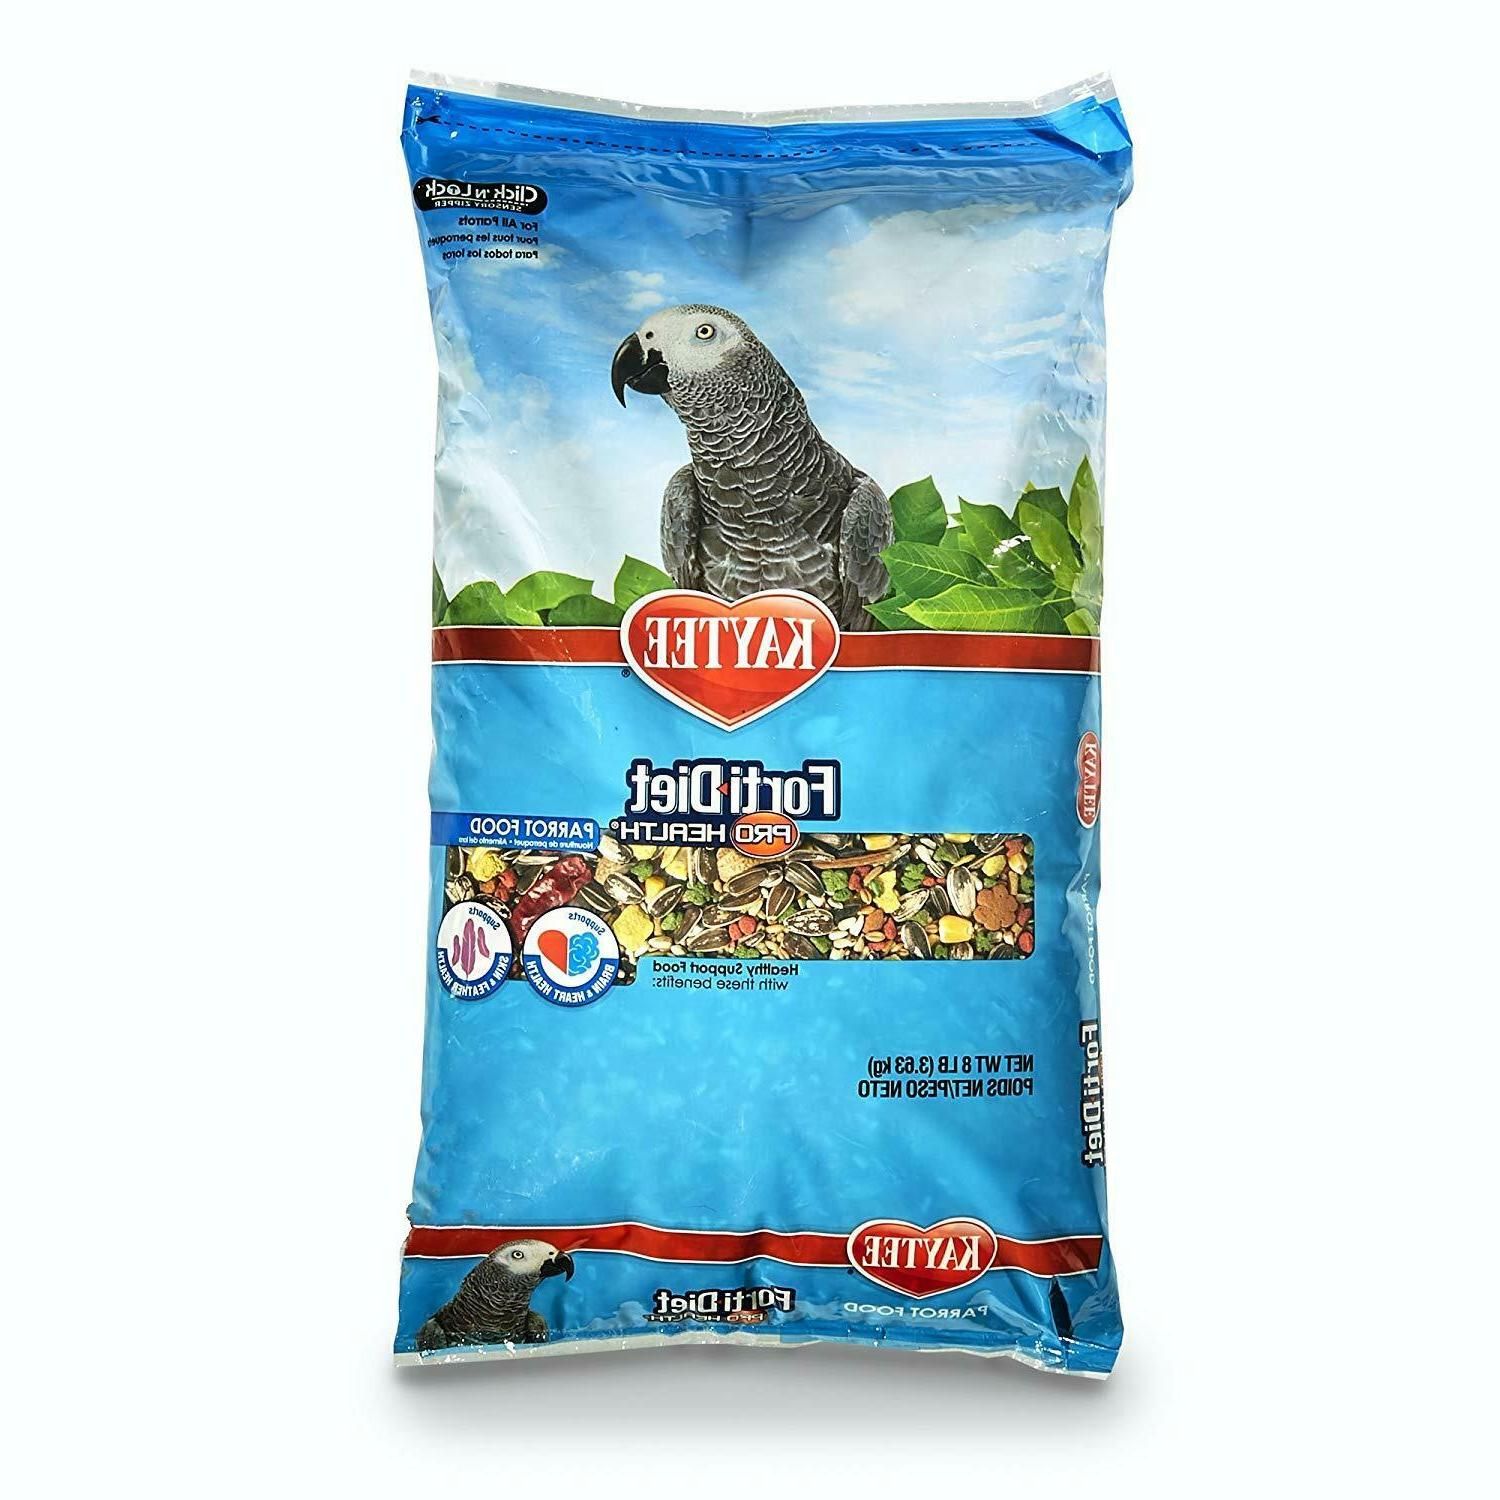 Food Forti Health Bird Diet Pro For Parrots